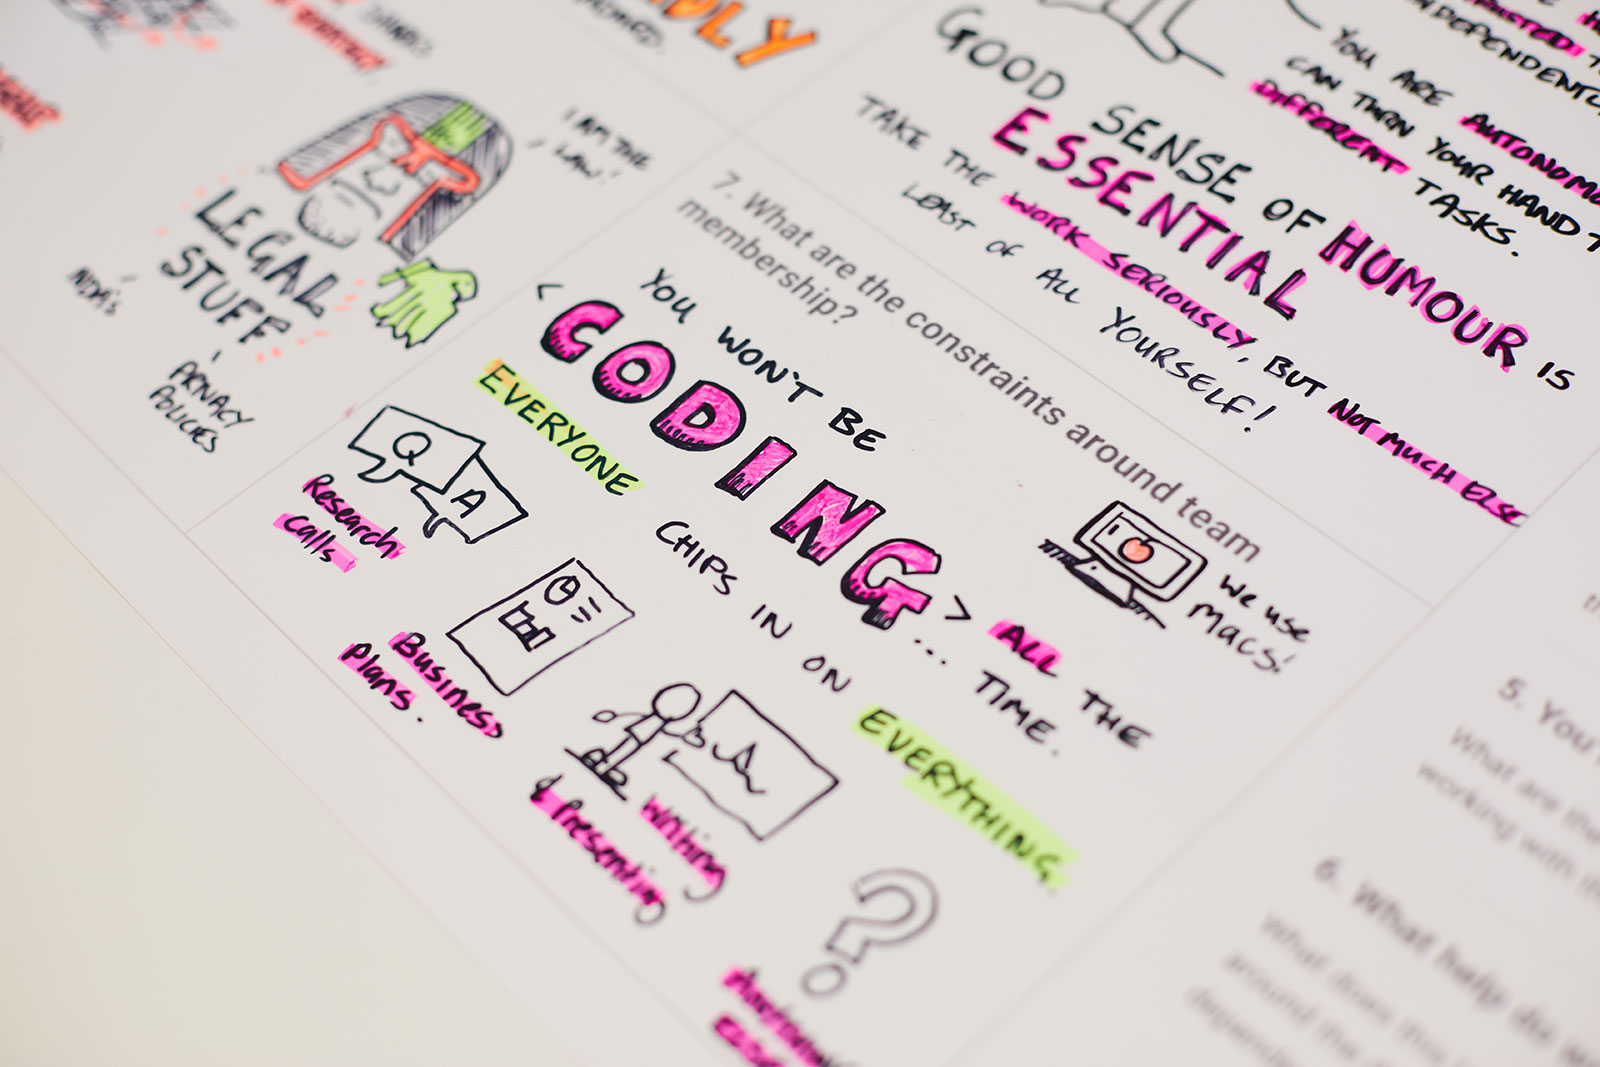 Sketch notes by Chris Spalton